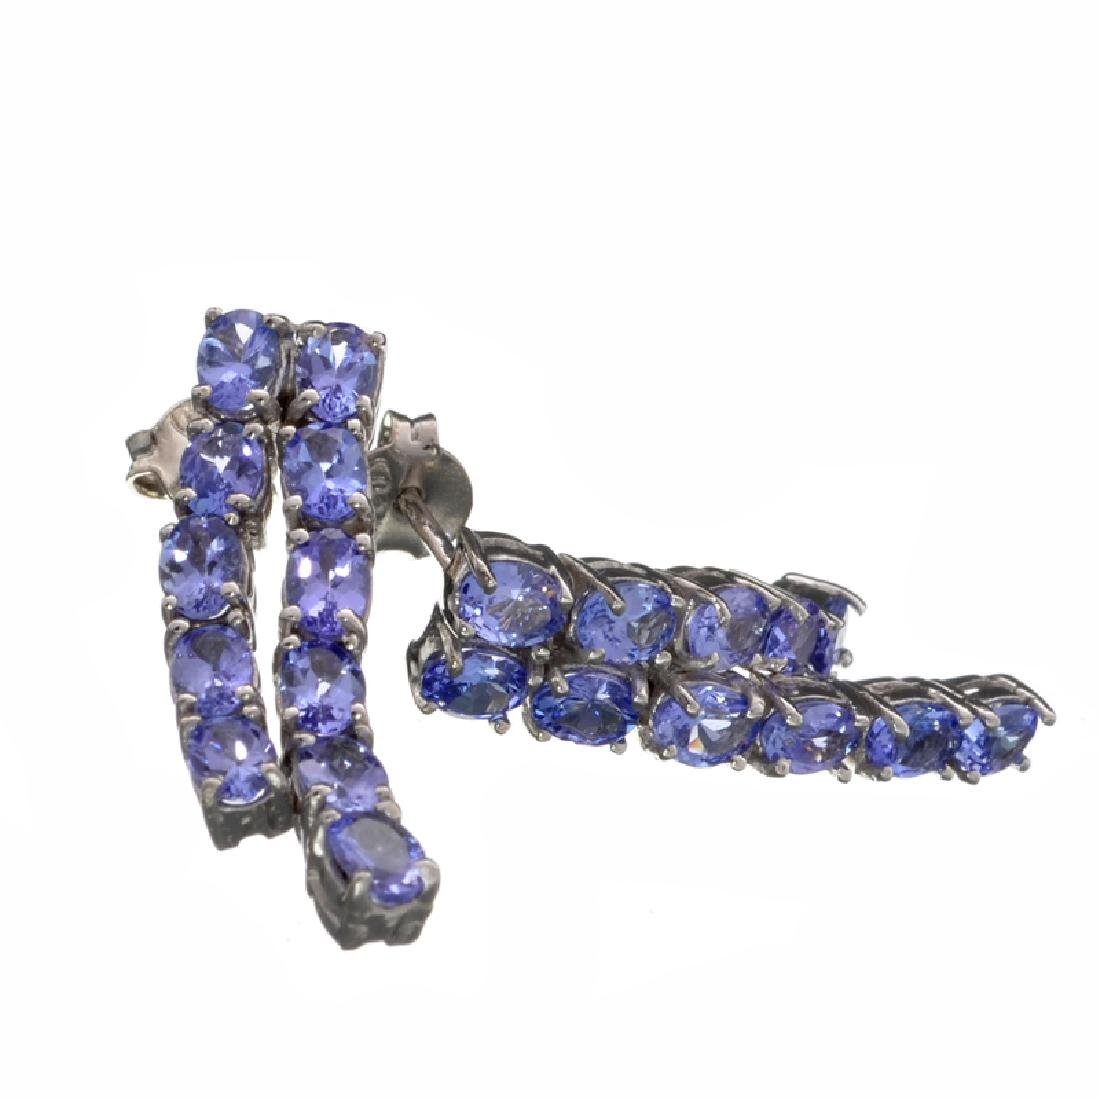 Fine Jewelry 2.88CT Oval Cut Violet Blue Tanzanite And